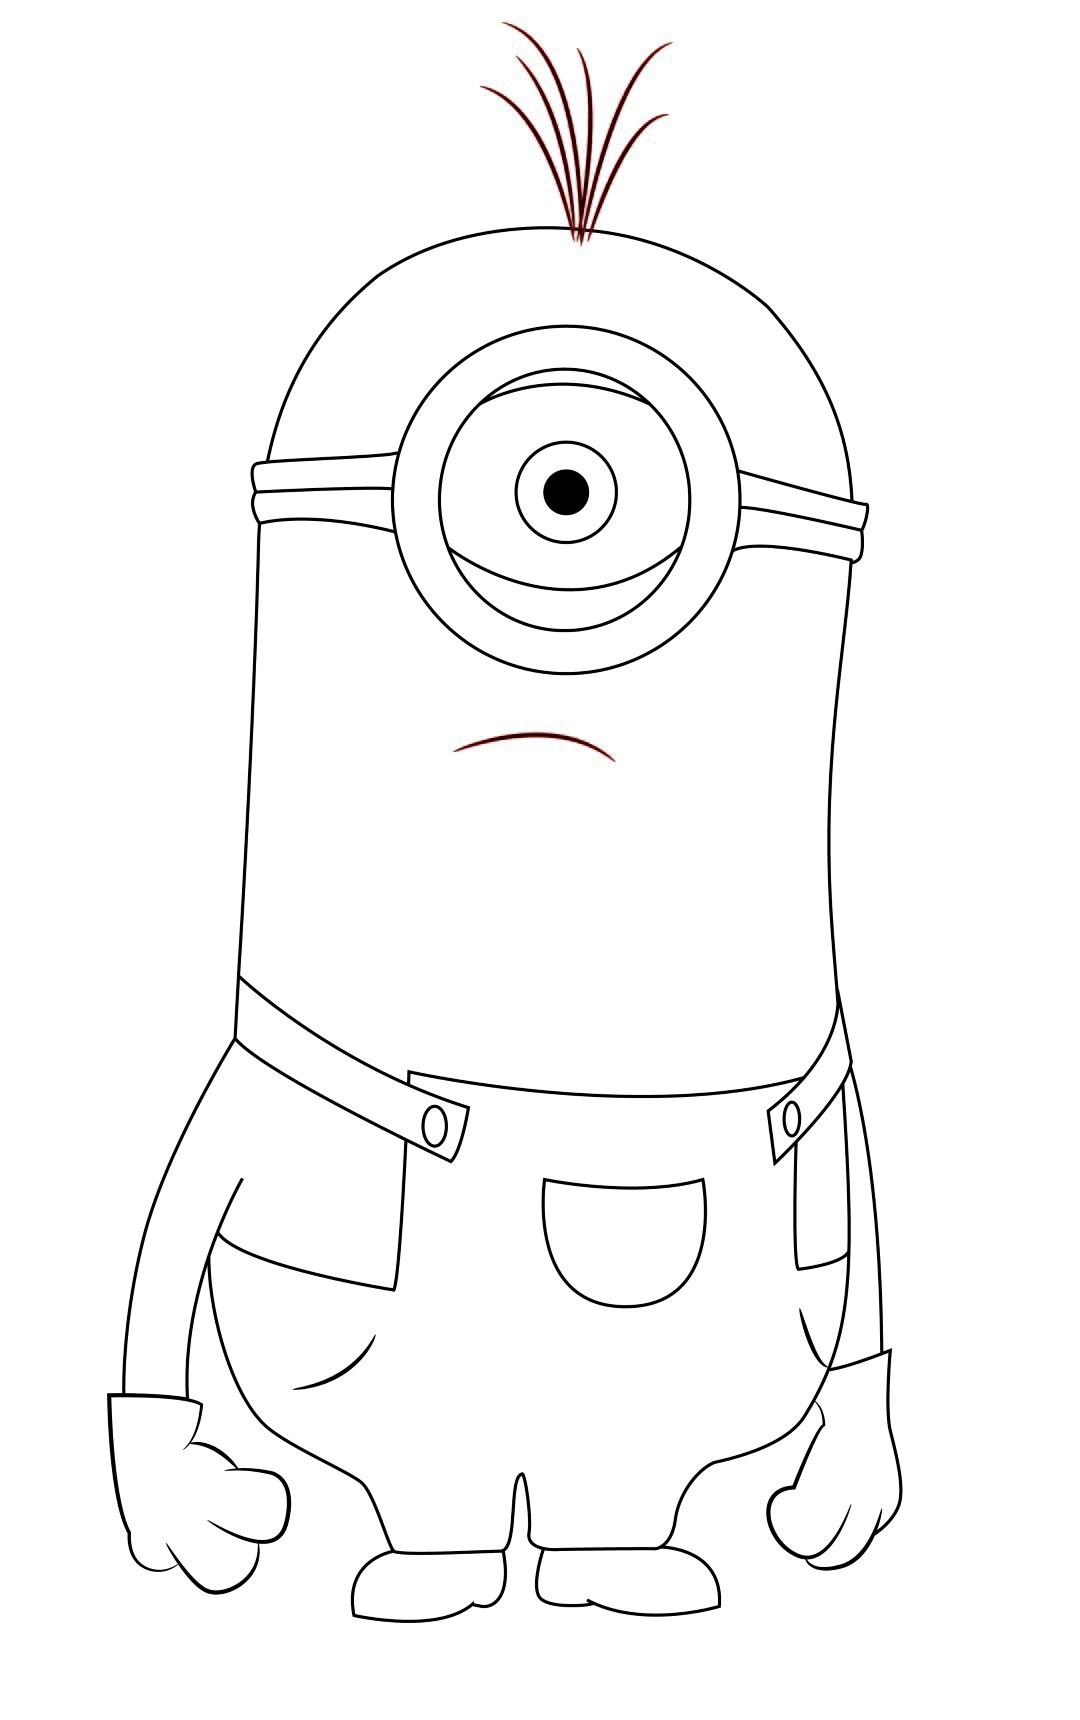 despicable me drawing learn how to draw margo from despicable me despicable me me drawing despicable